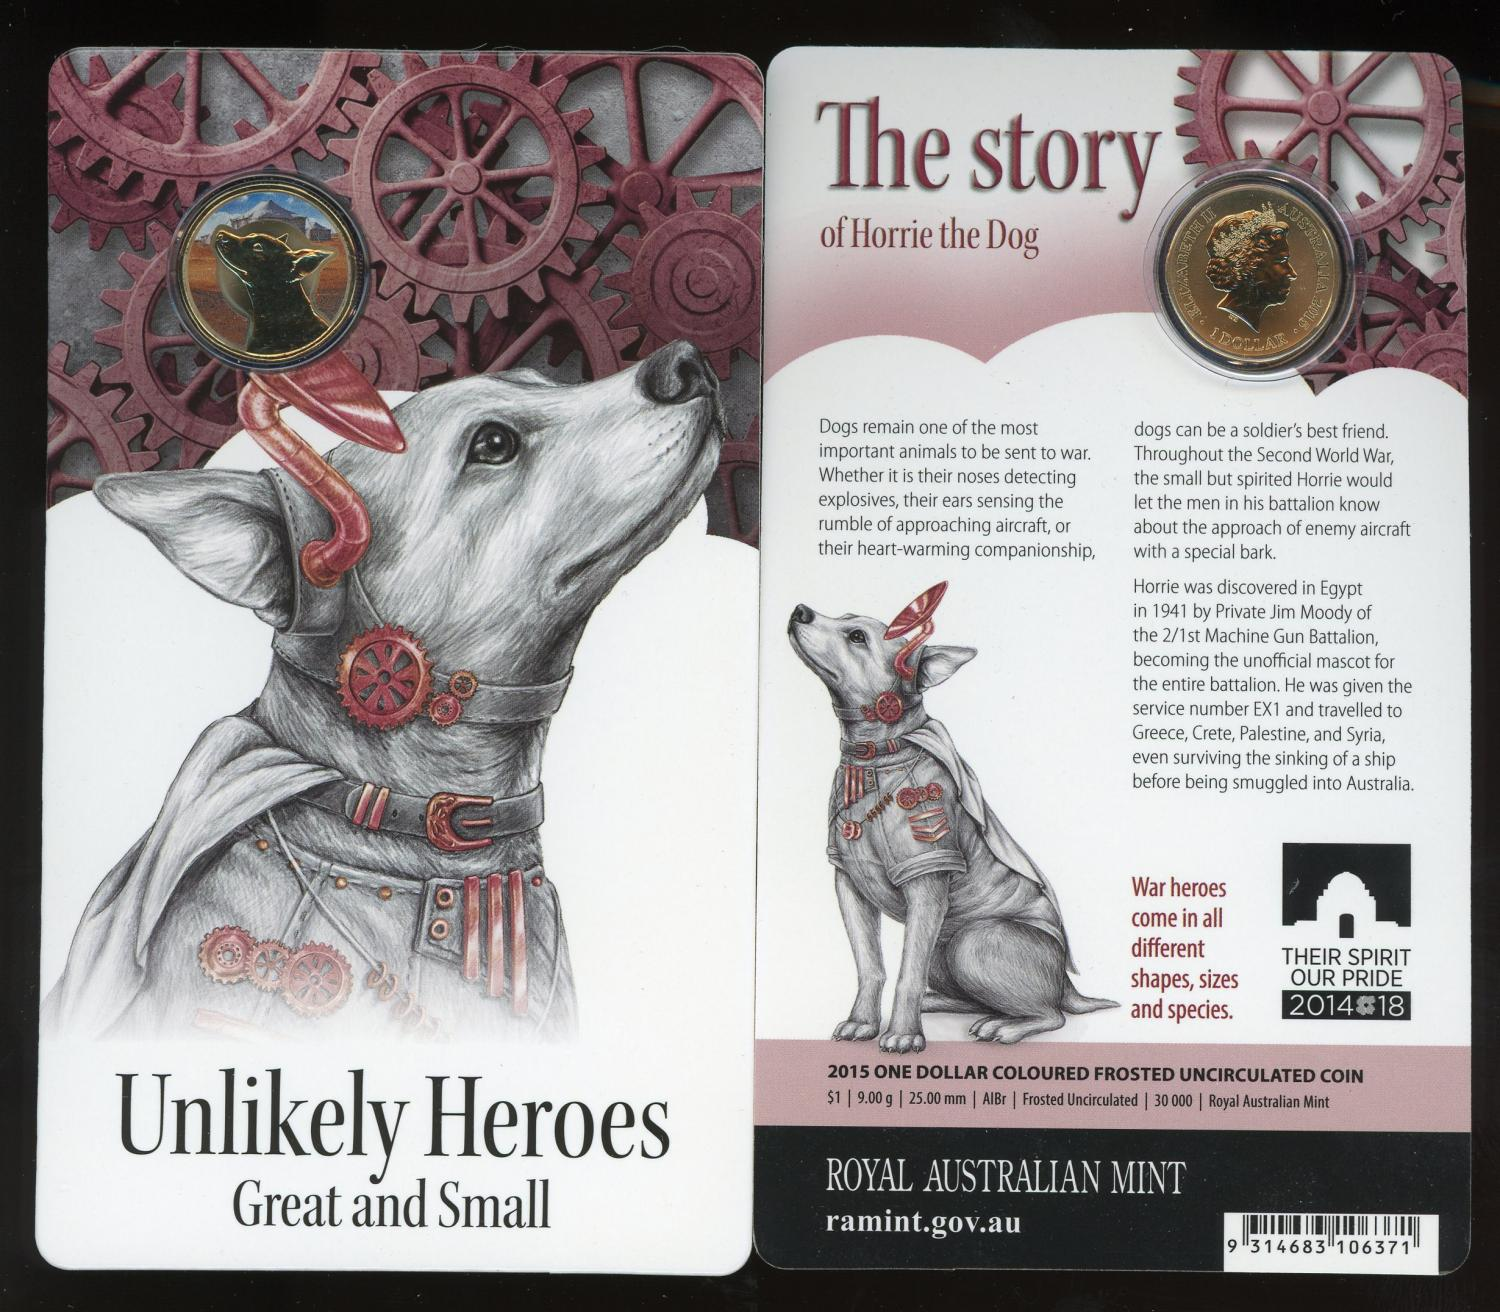 Thumbnail for 2015 Unlikely Heroes - Horrie the Dog